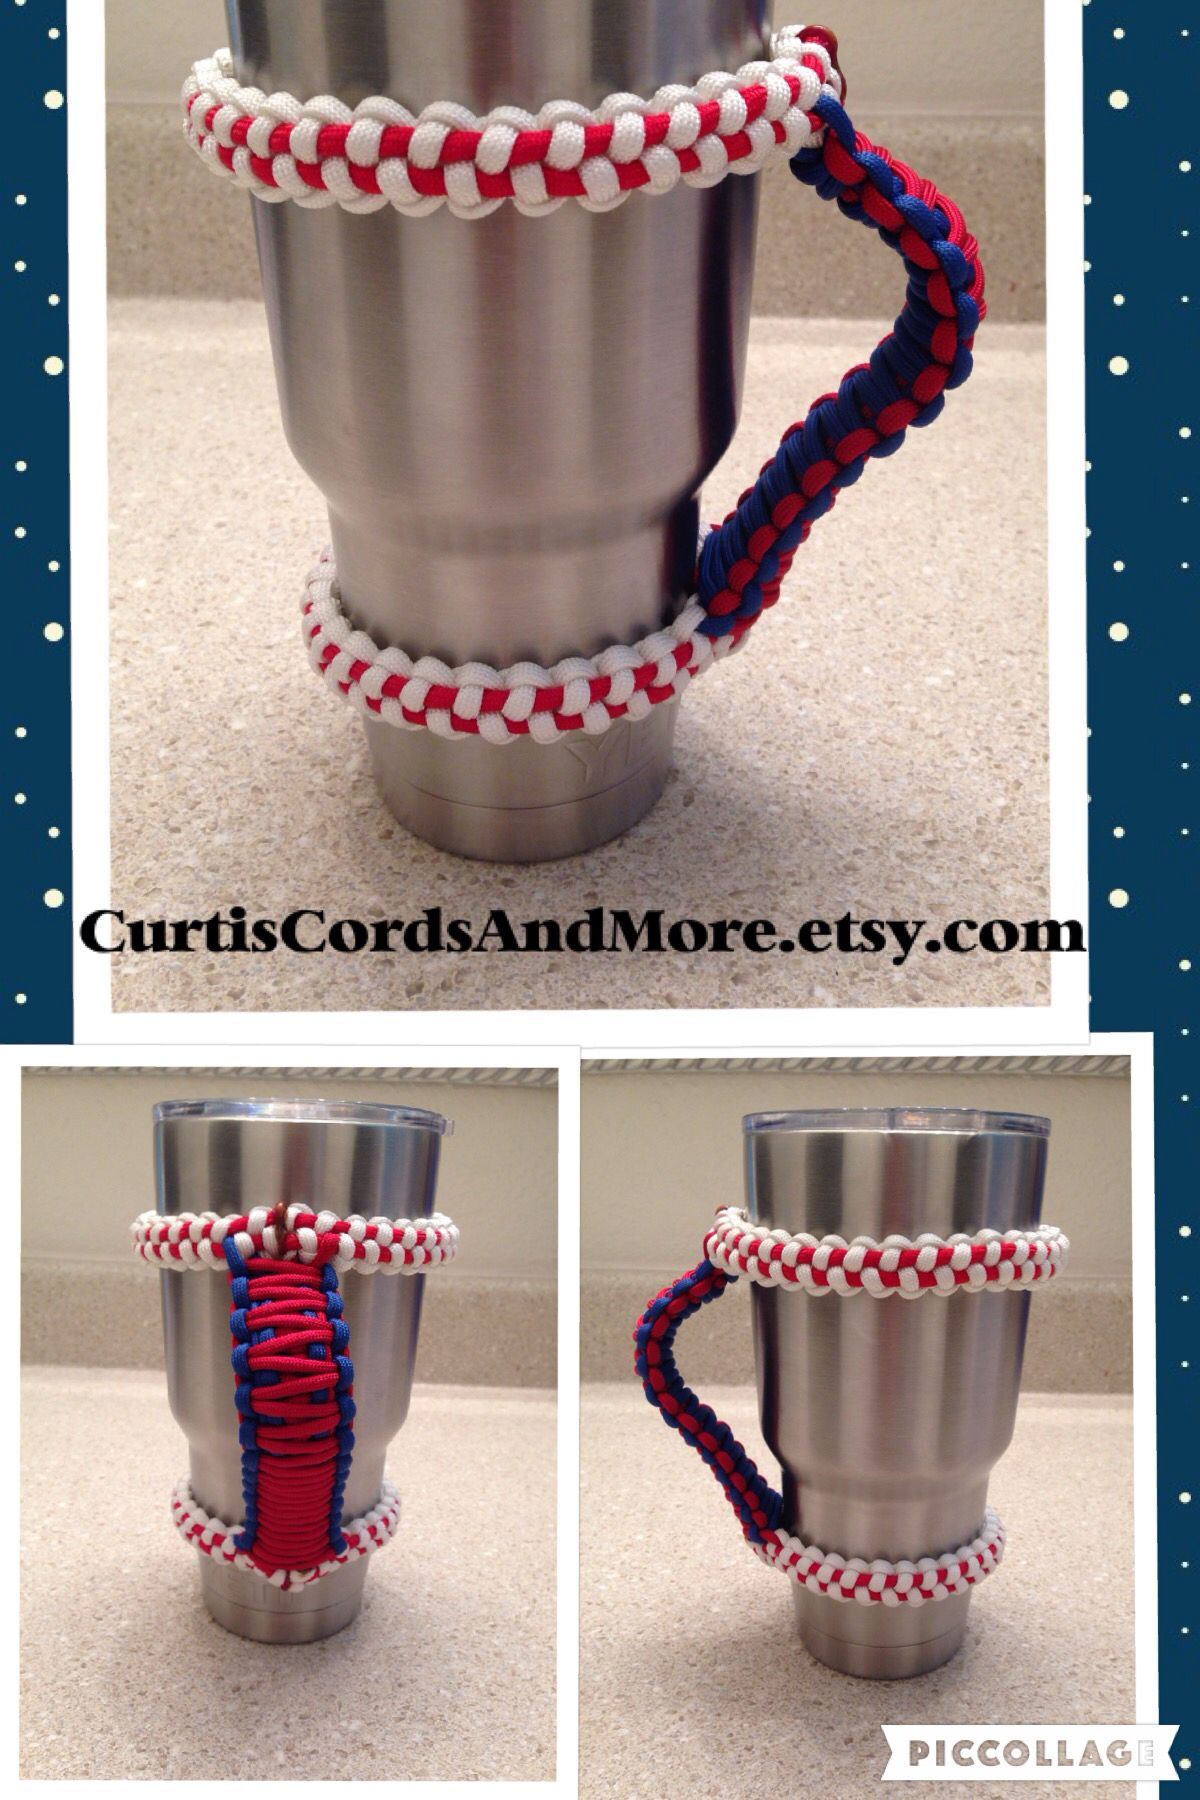 Brand new design! Baseball stitch with team colors on the handle! Check out this AWESOME paracord handle handmade in the USA for the 30 oz Yeti and also fits the Tervis Tumbler! Another great creation by Curtis Cords & More! #yetihandle #tervishandle. #yetiparacordhandle #Paracordhandle #CurtisCordsAndMore #Baseball #BaseballStitch #MLB Curtiscordsandmore.etsy.com